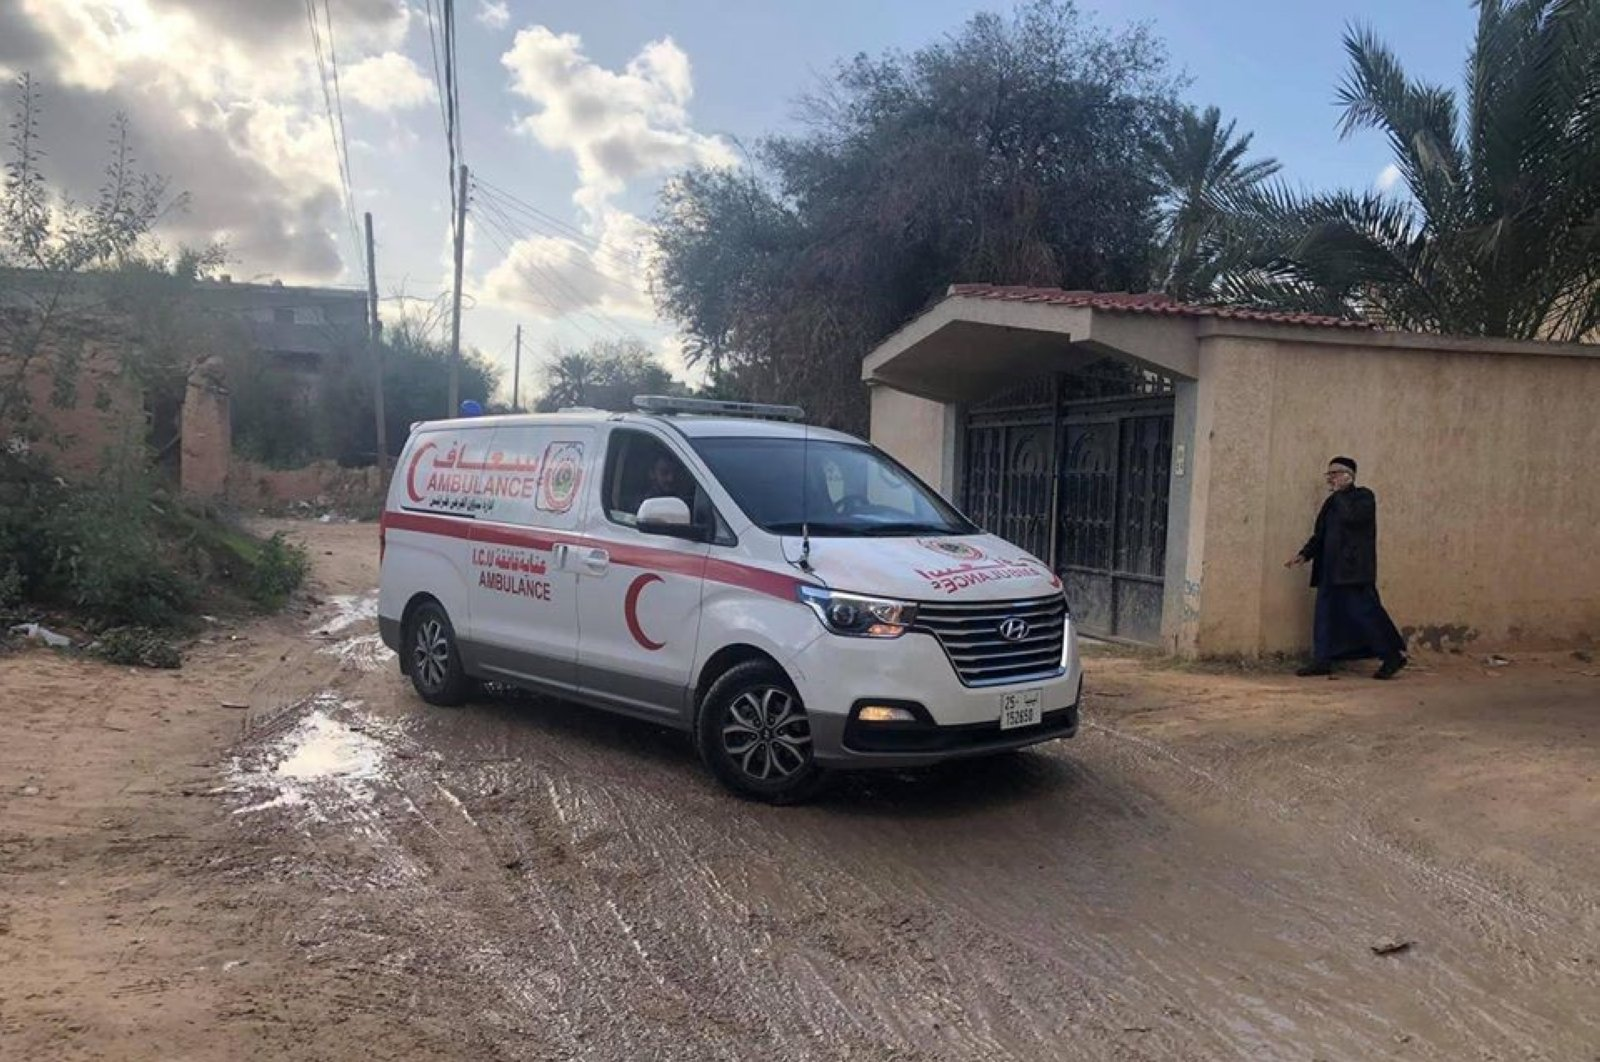 2 civilians died while four others were injured in attacks by forces loyal to Haftar in Libya, March 8, 2020 (IHA Photo)